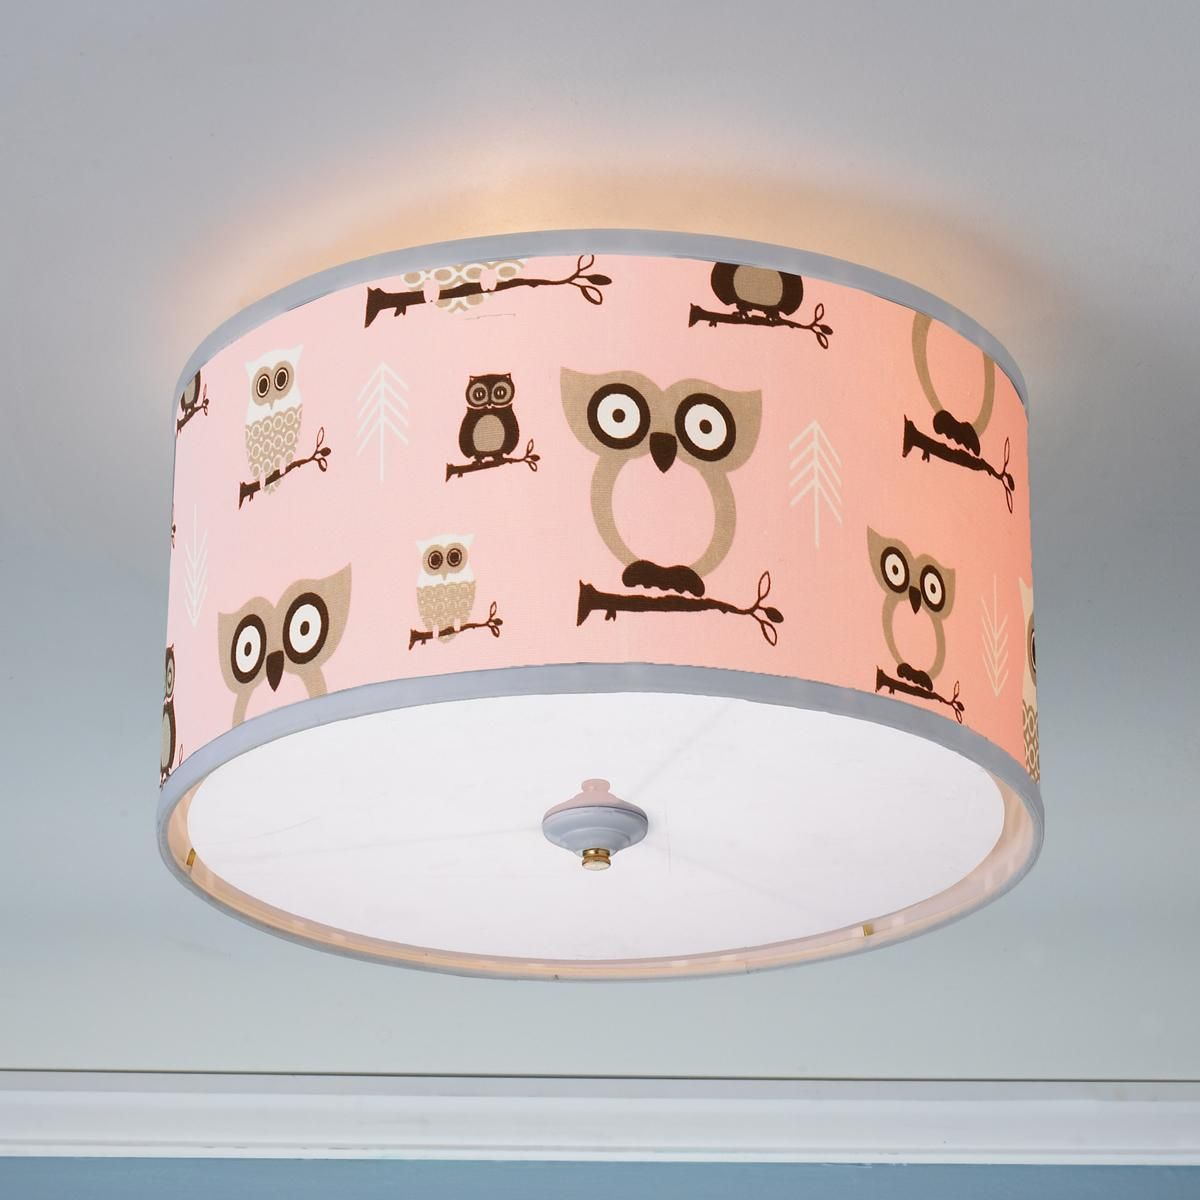 Ceiling Light For Baby Boy Room Owls Drum Shade Ceiling Light Drum Shade Ceiling Lights